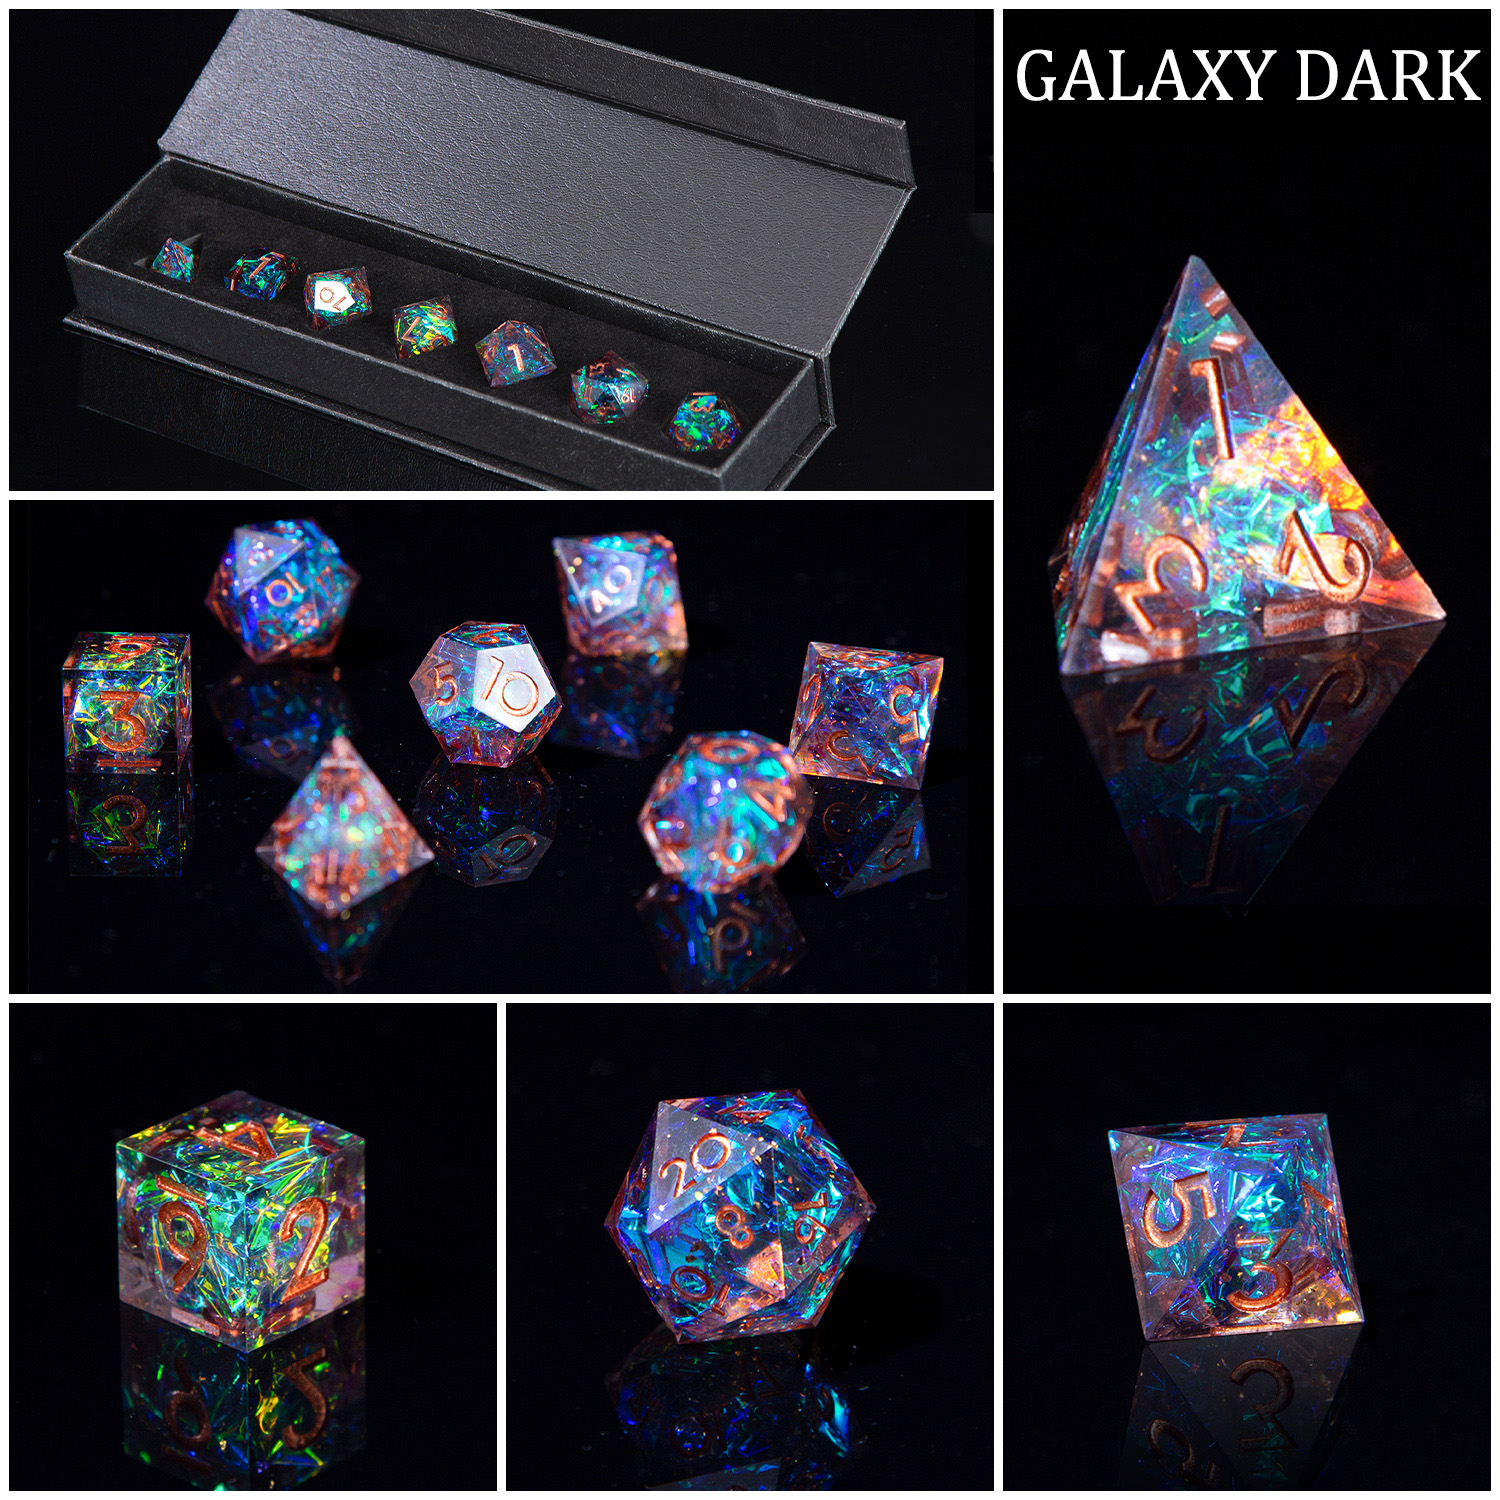 DND Role Playing Game Dice 100% Handcrafted 7-Die Polyhedral Mirror Dice Sets with Sharp Edges and Beautiful Inclusions